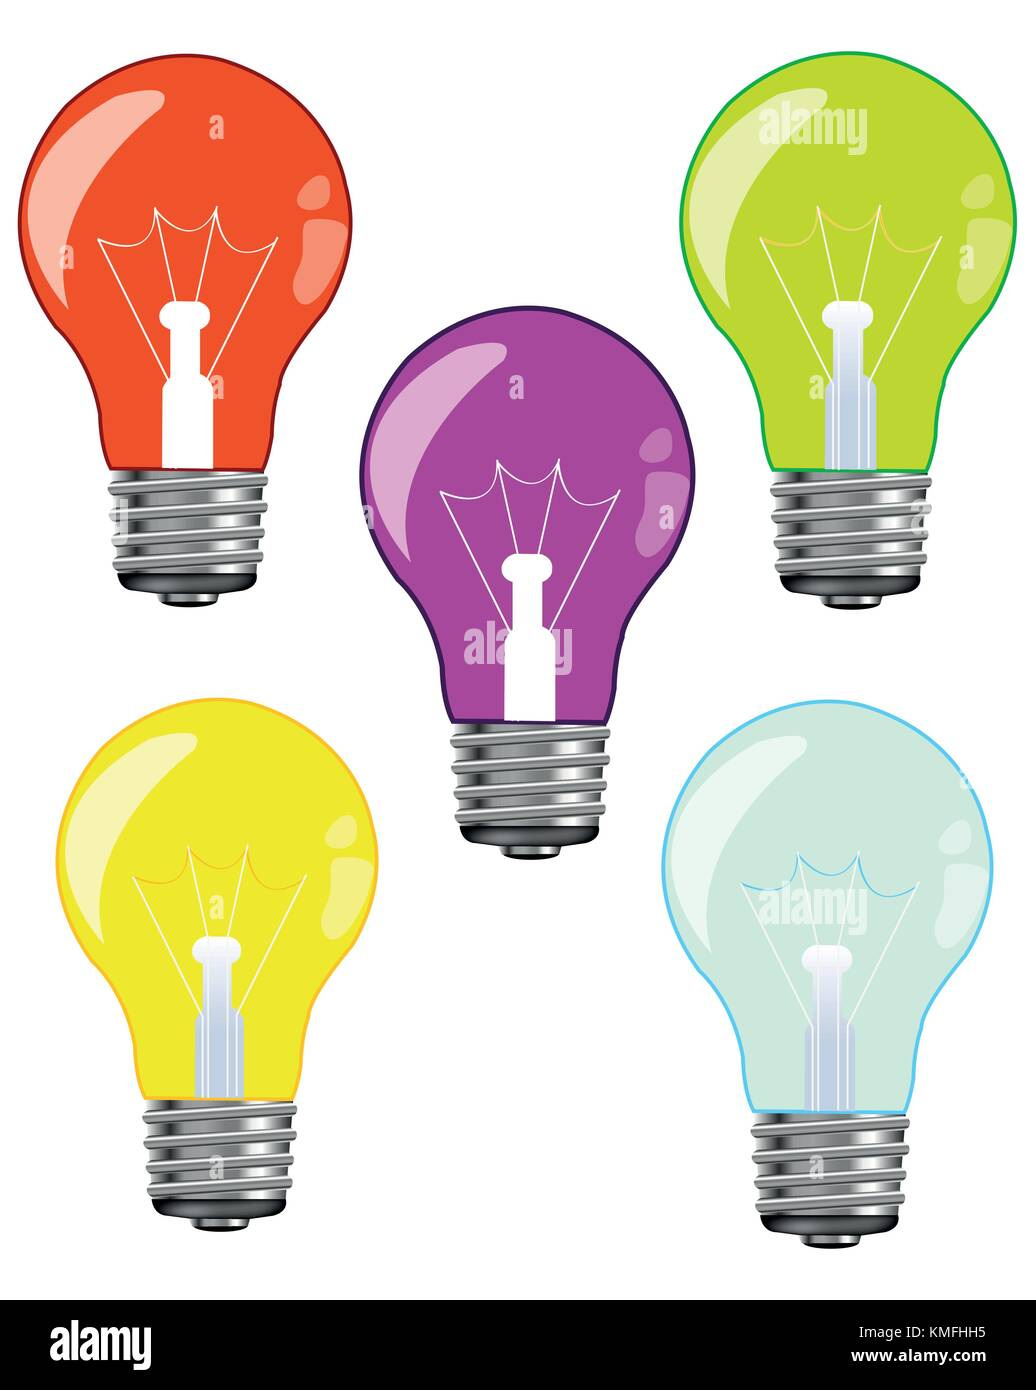 Light Bulbs Stock Vector Images Alamy Besides Incandescent On Bulb Diagram Colour